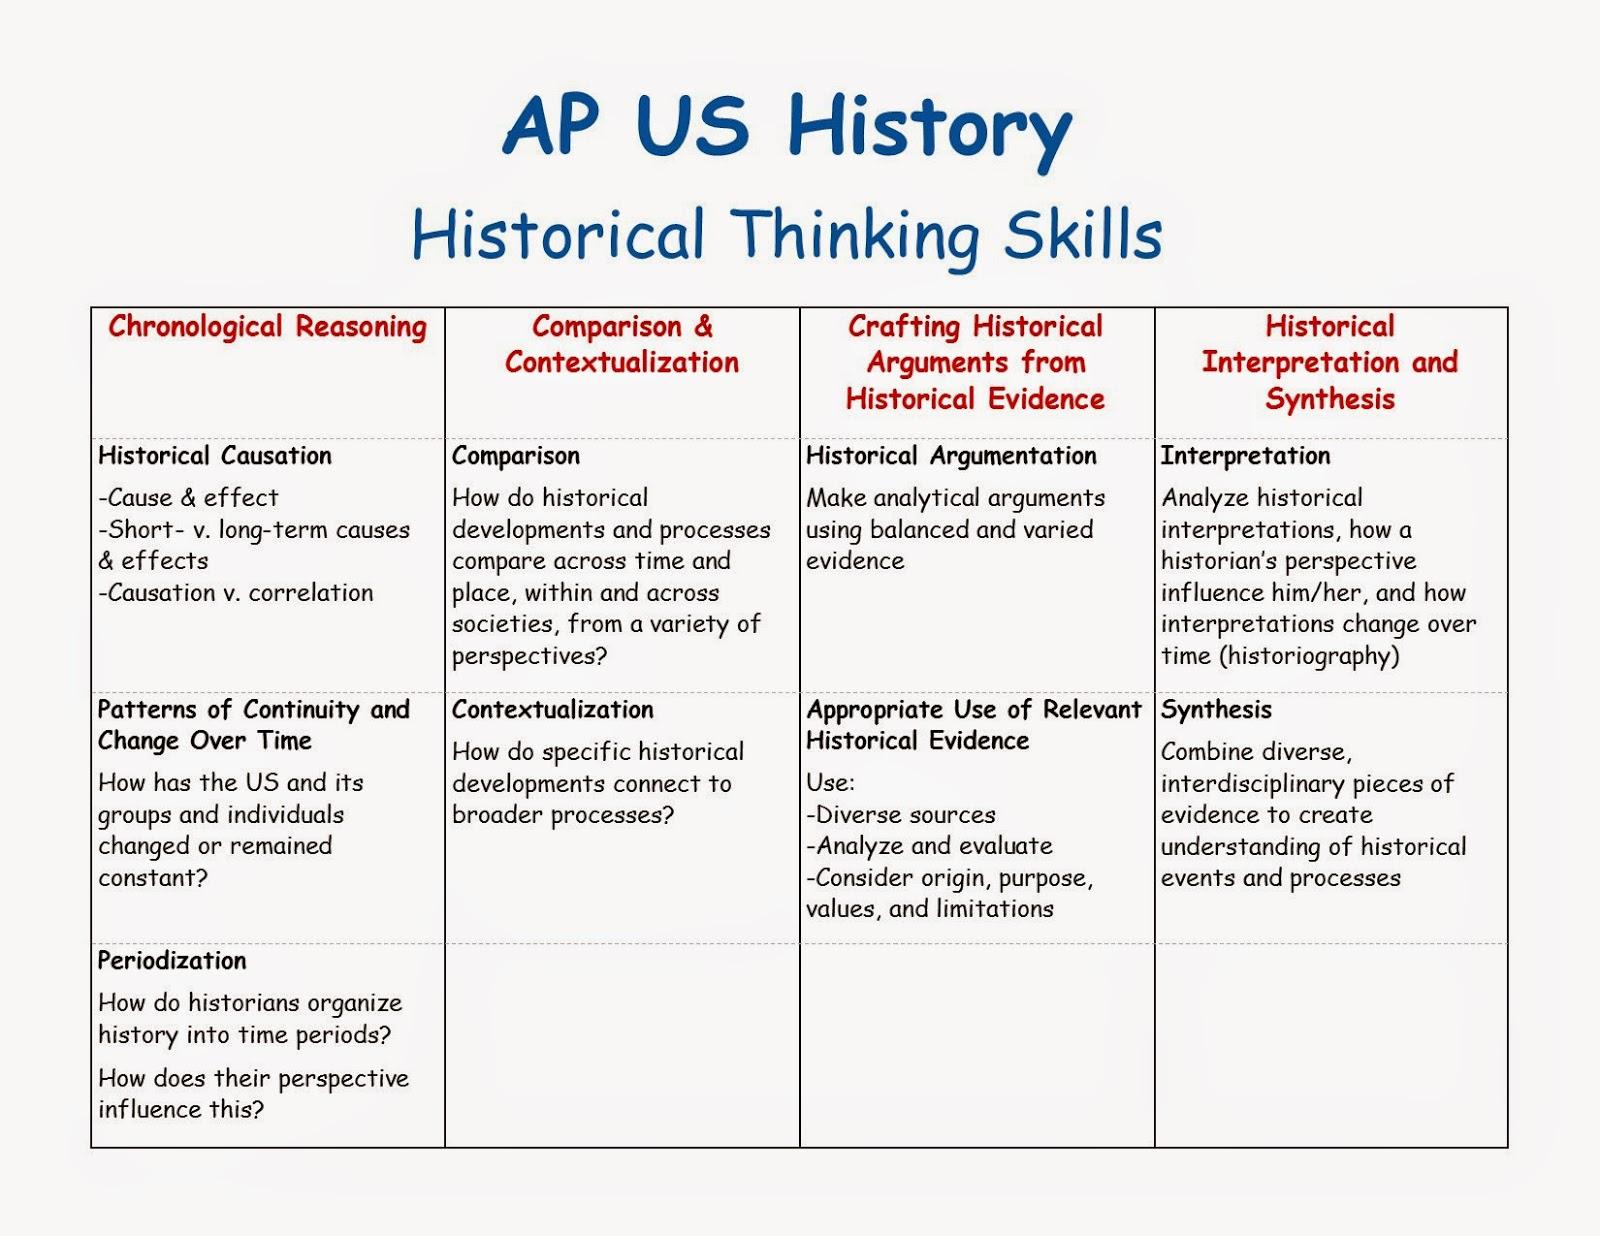 ap history dbq essays Writing a dbq: ap world history introduction contrast essay, a change over time essay, and a document-based question for the next few days.